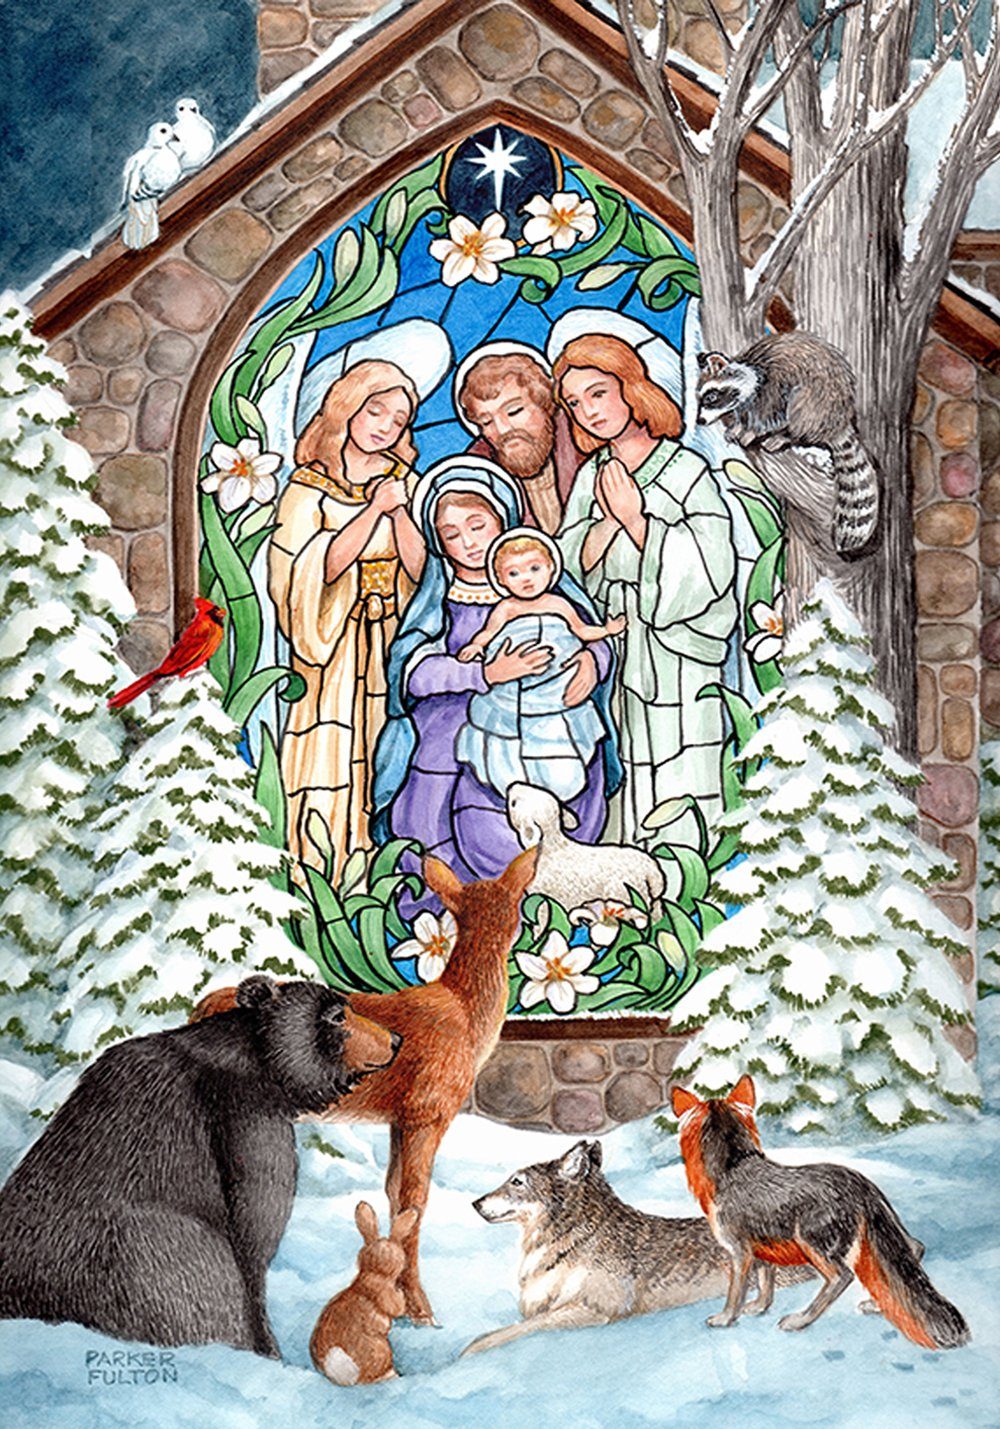 Toland Home Garden Winter Nativity 12.5 x 18 Inch Decorative Stained Glass Christmas Church Animal Garden Flag - 112517